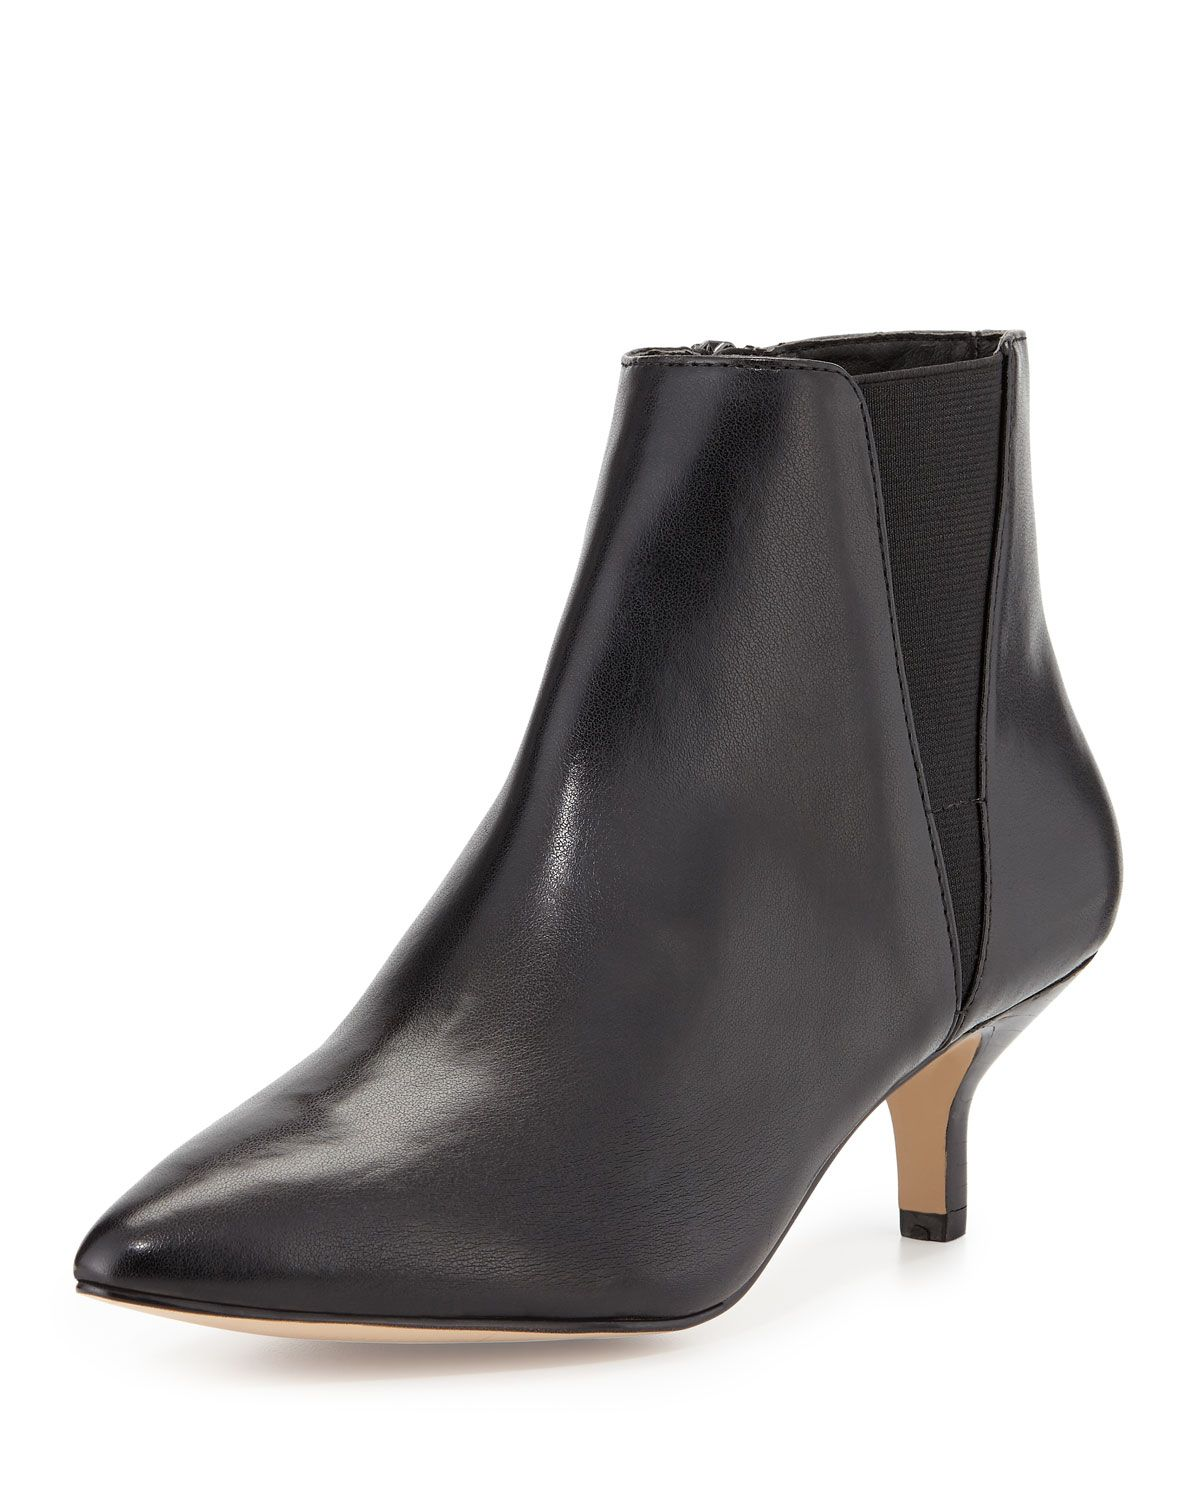 Donald J Pliner Geeo Leather Pointed-Toe Bootie, Black